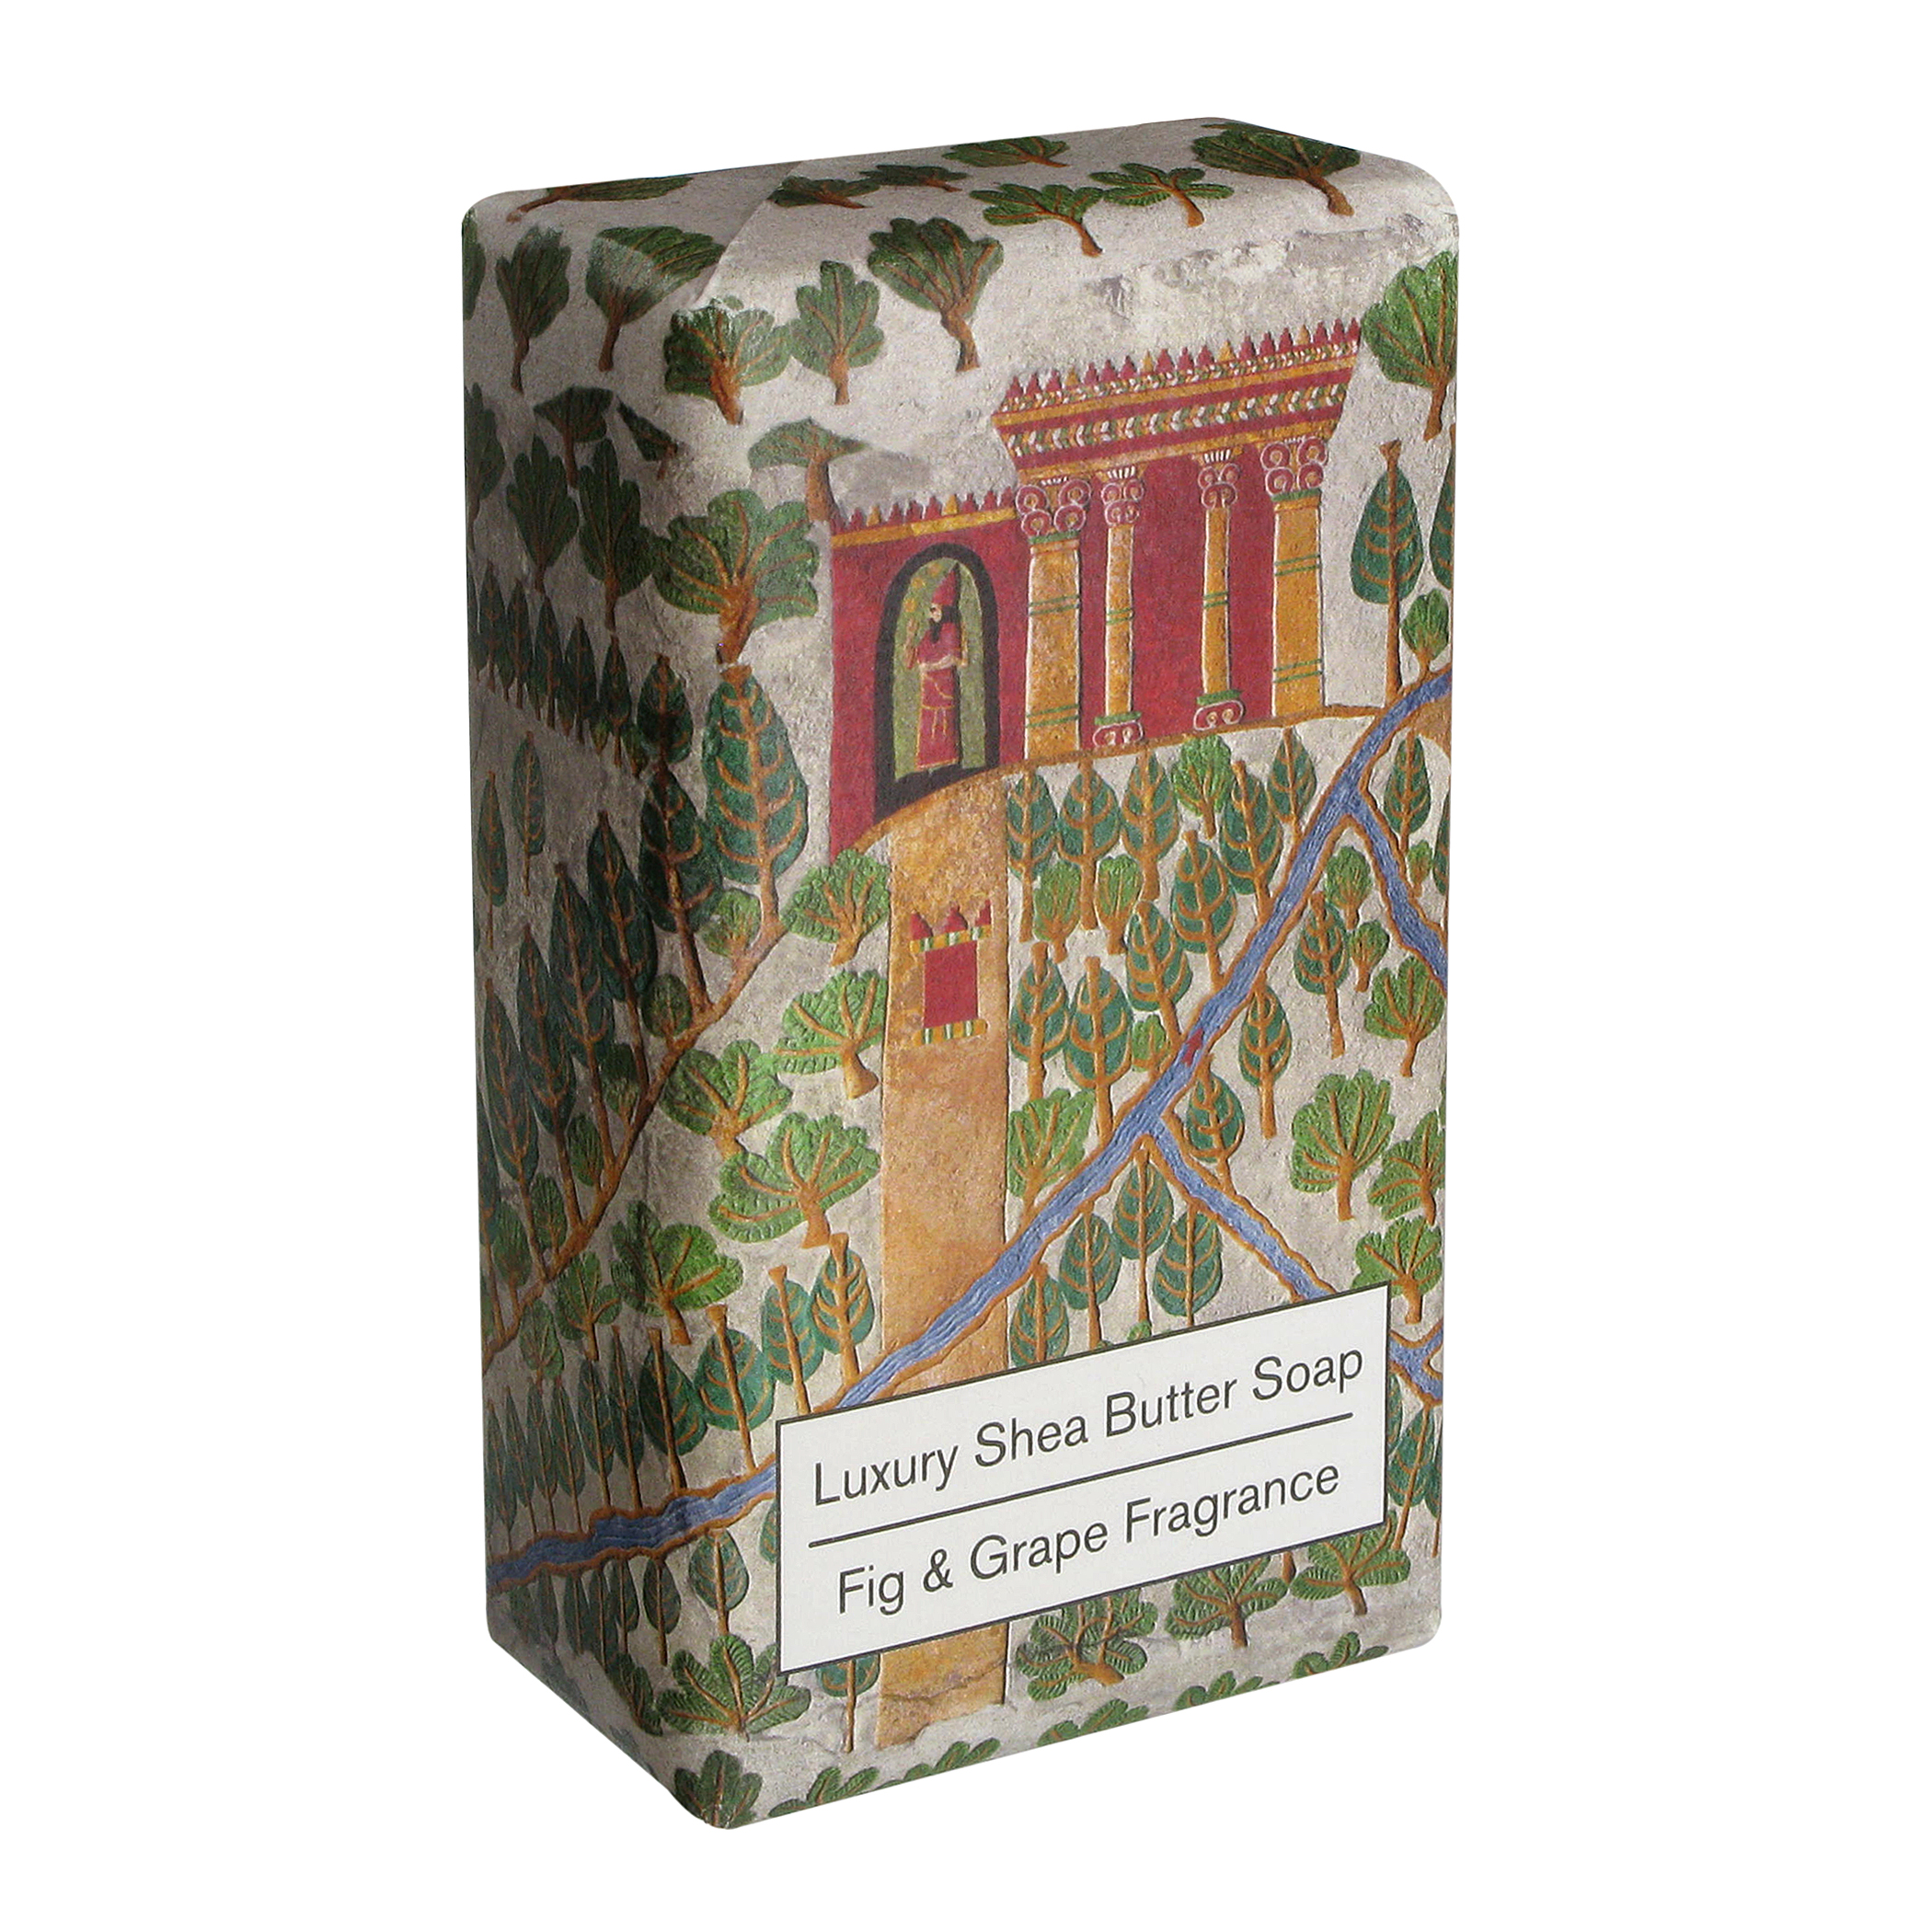 The Gardens of Nineveh soap